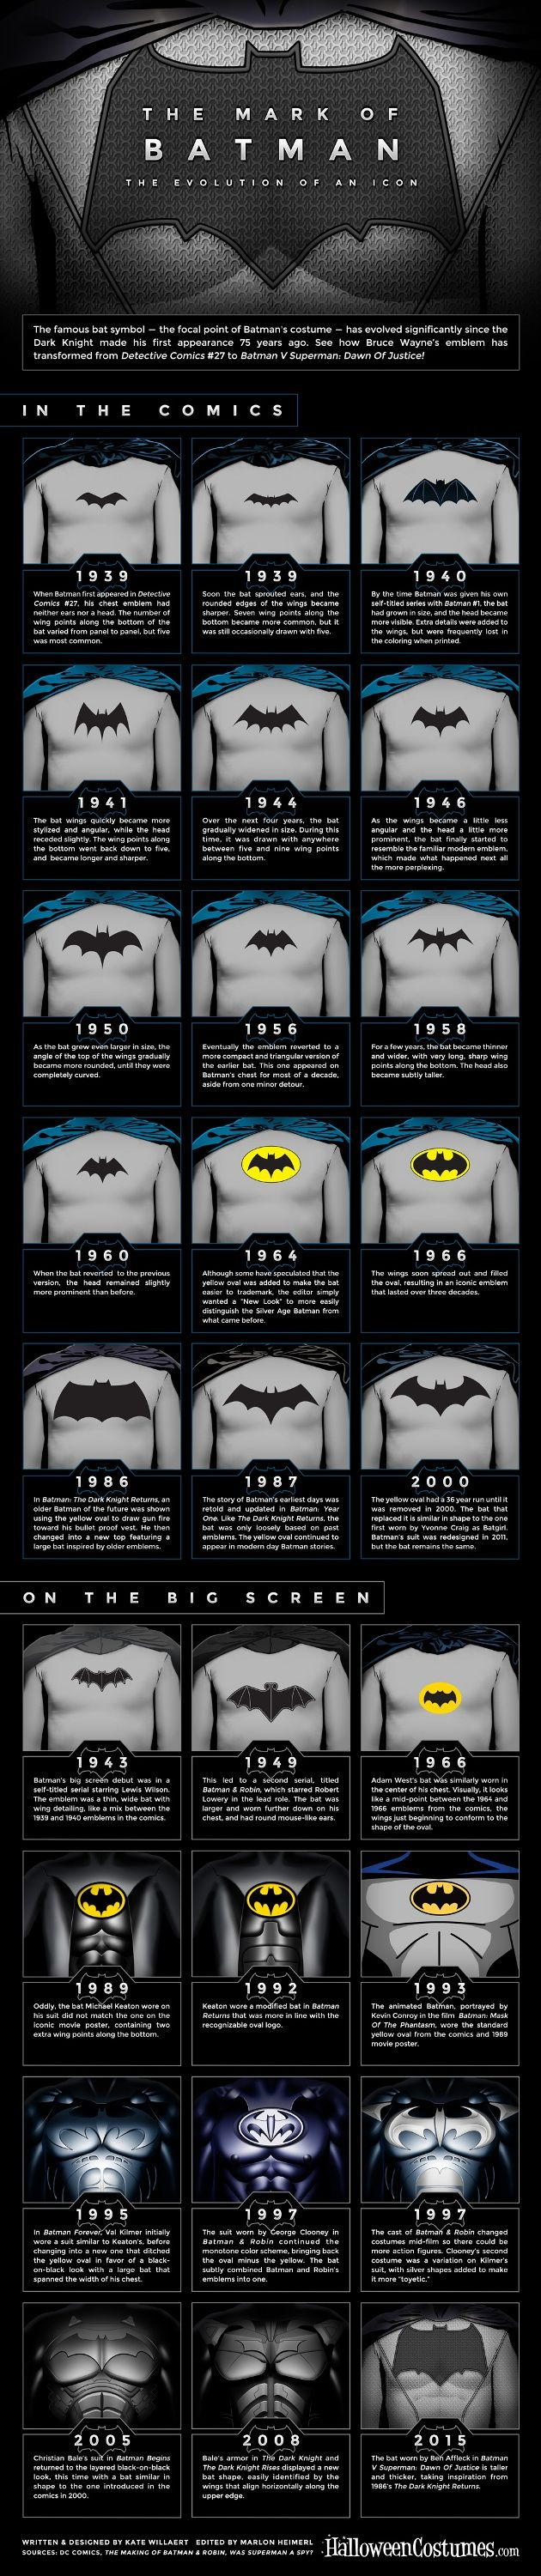 The Mark of Batman; Bat-emblems over the years.